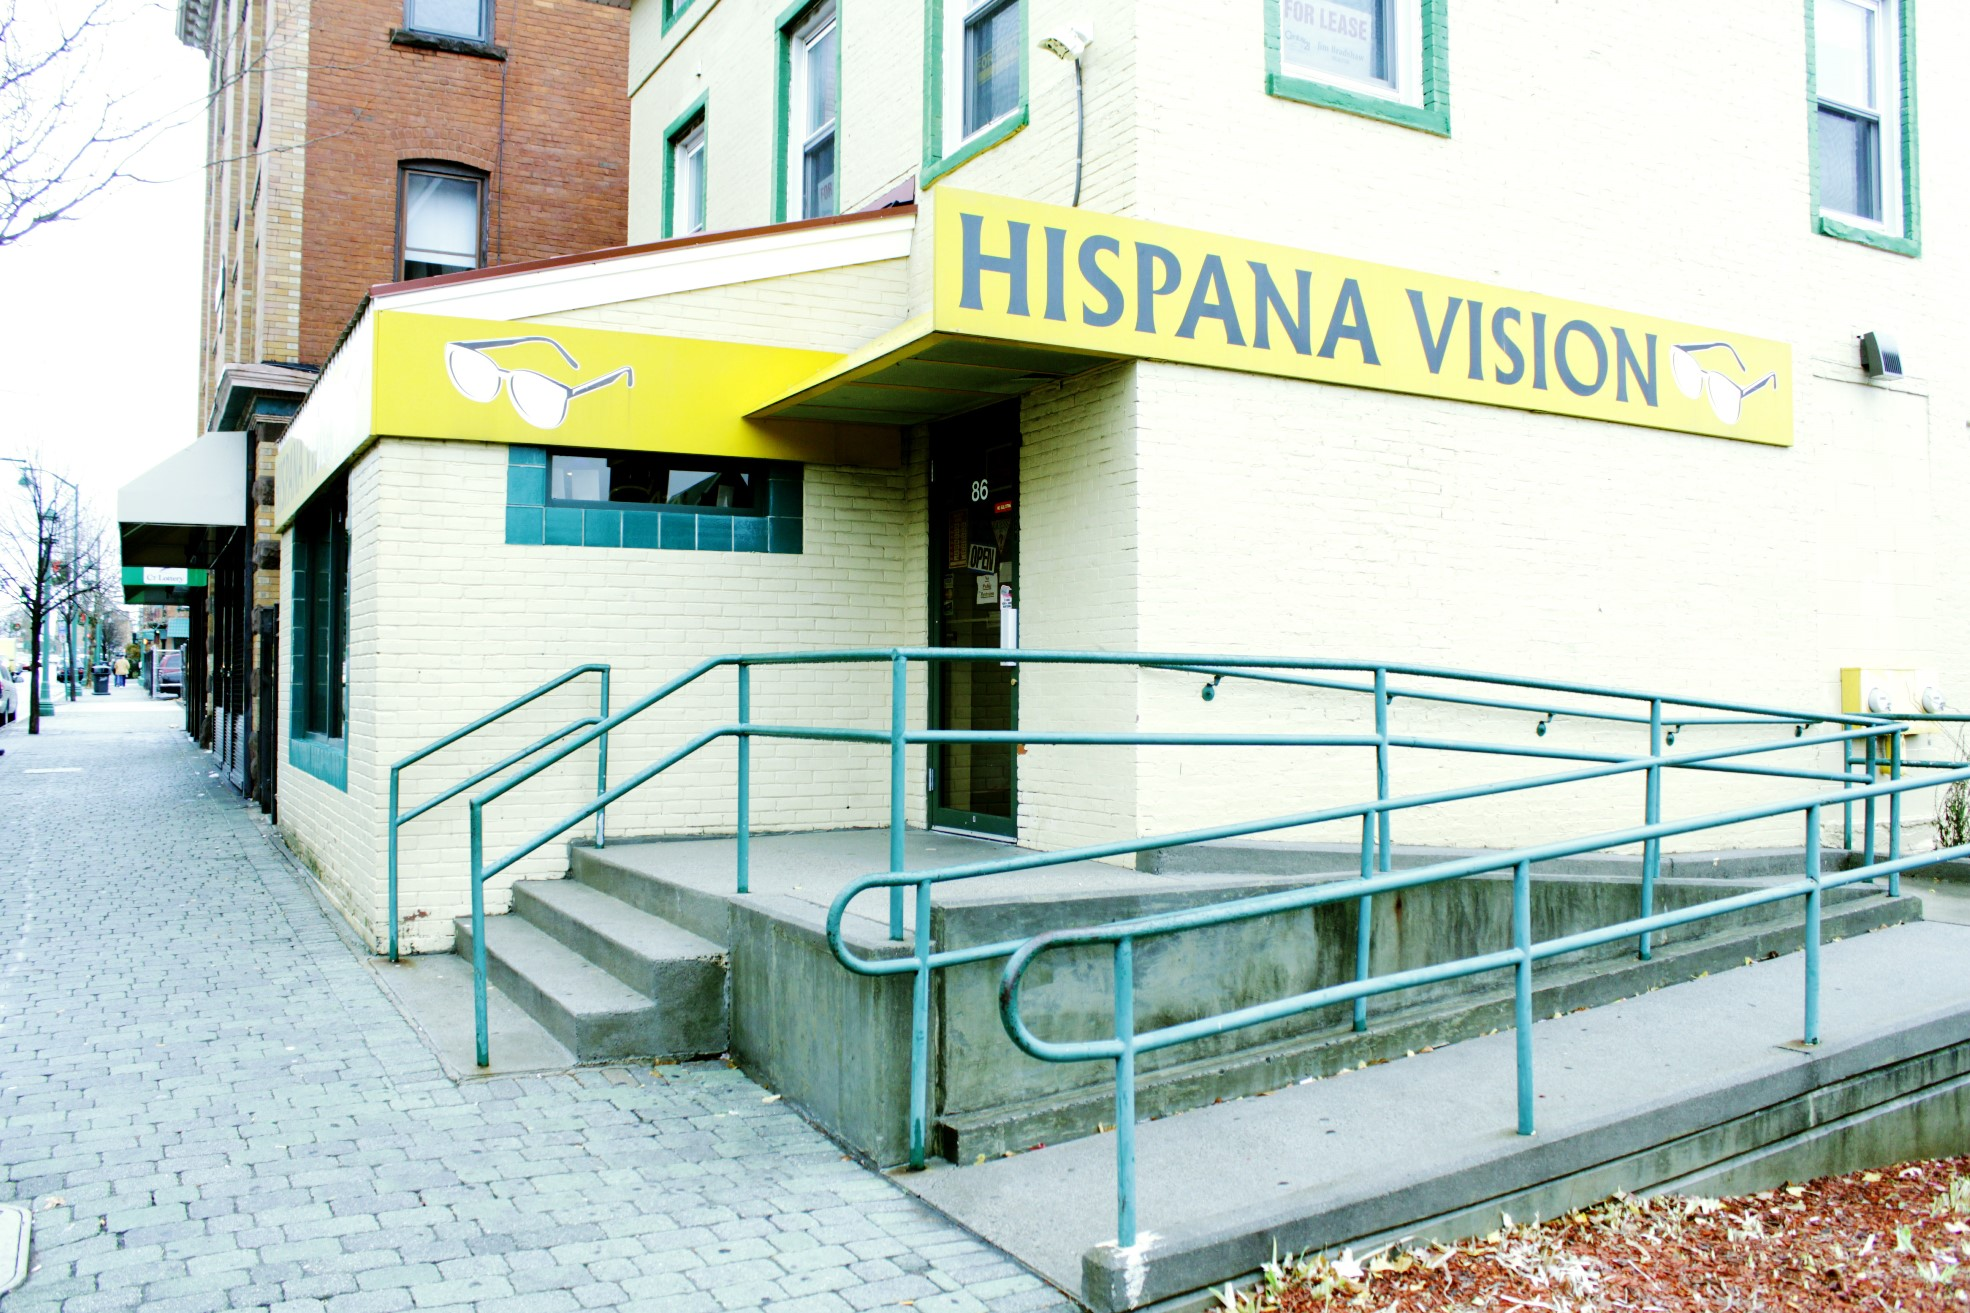 Hispana-vision-CT-2-86-Park-St-Hartford-CT